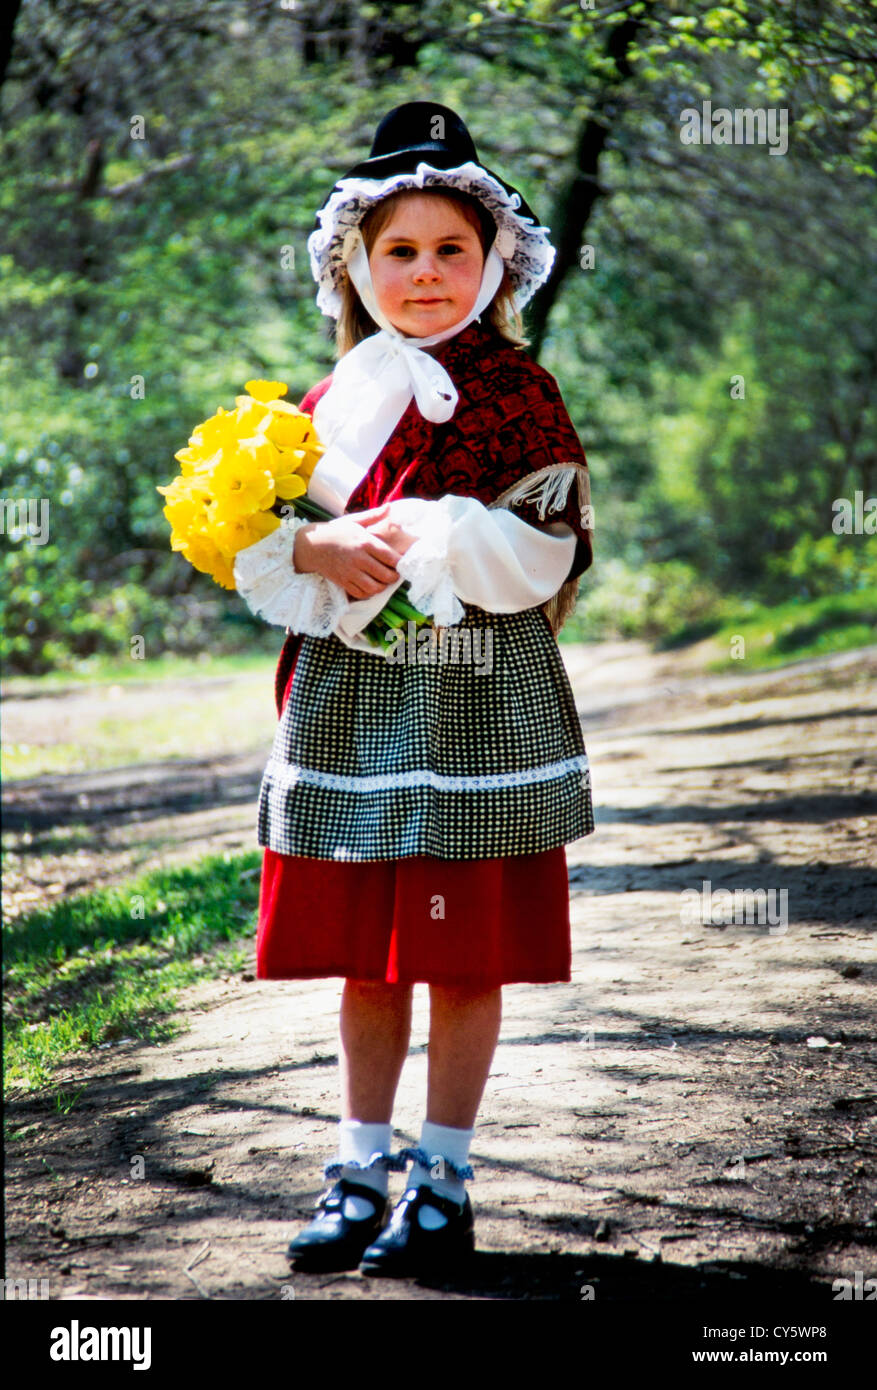 877823f16 Traditional Welsh Costume Stock Photos & Traditional Welsh Costume ...